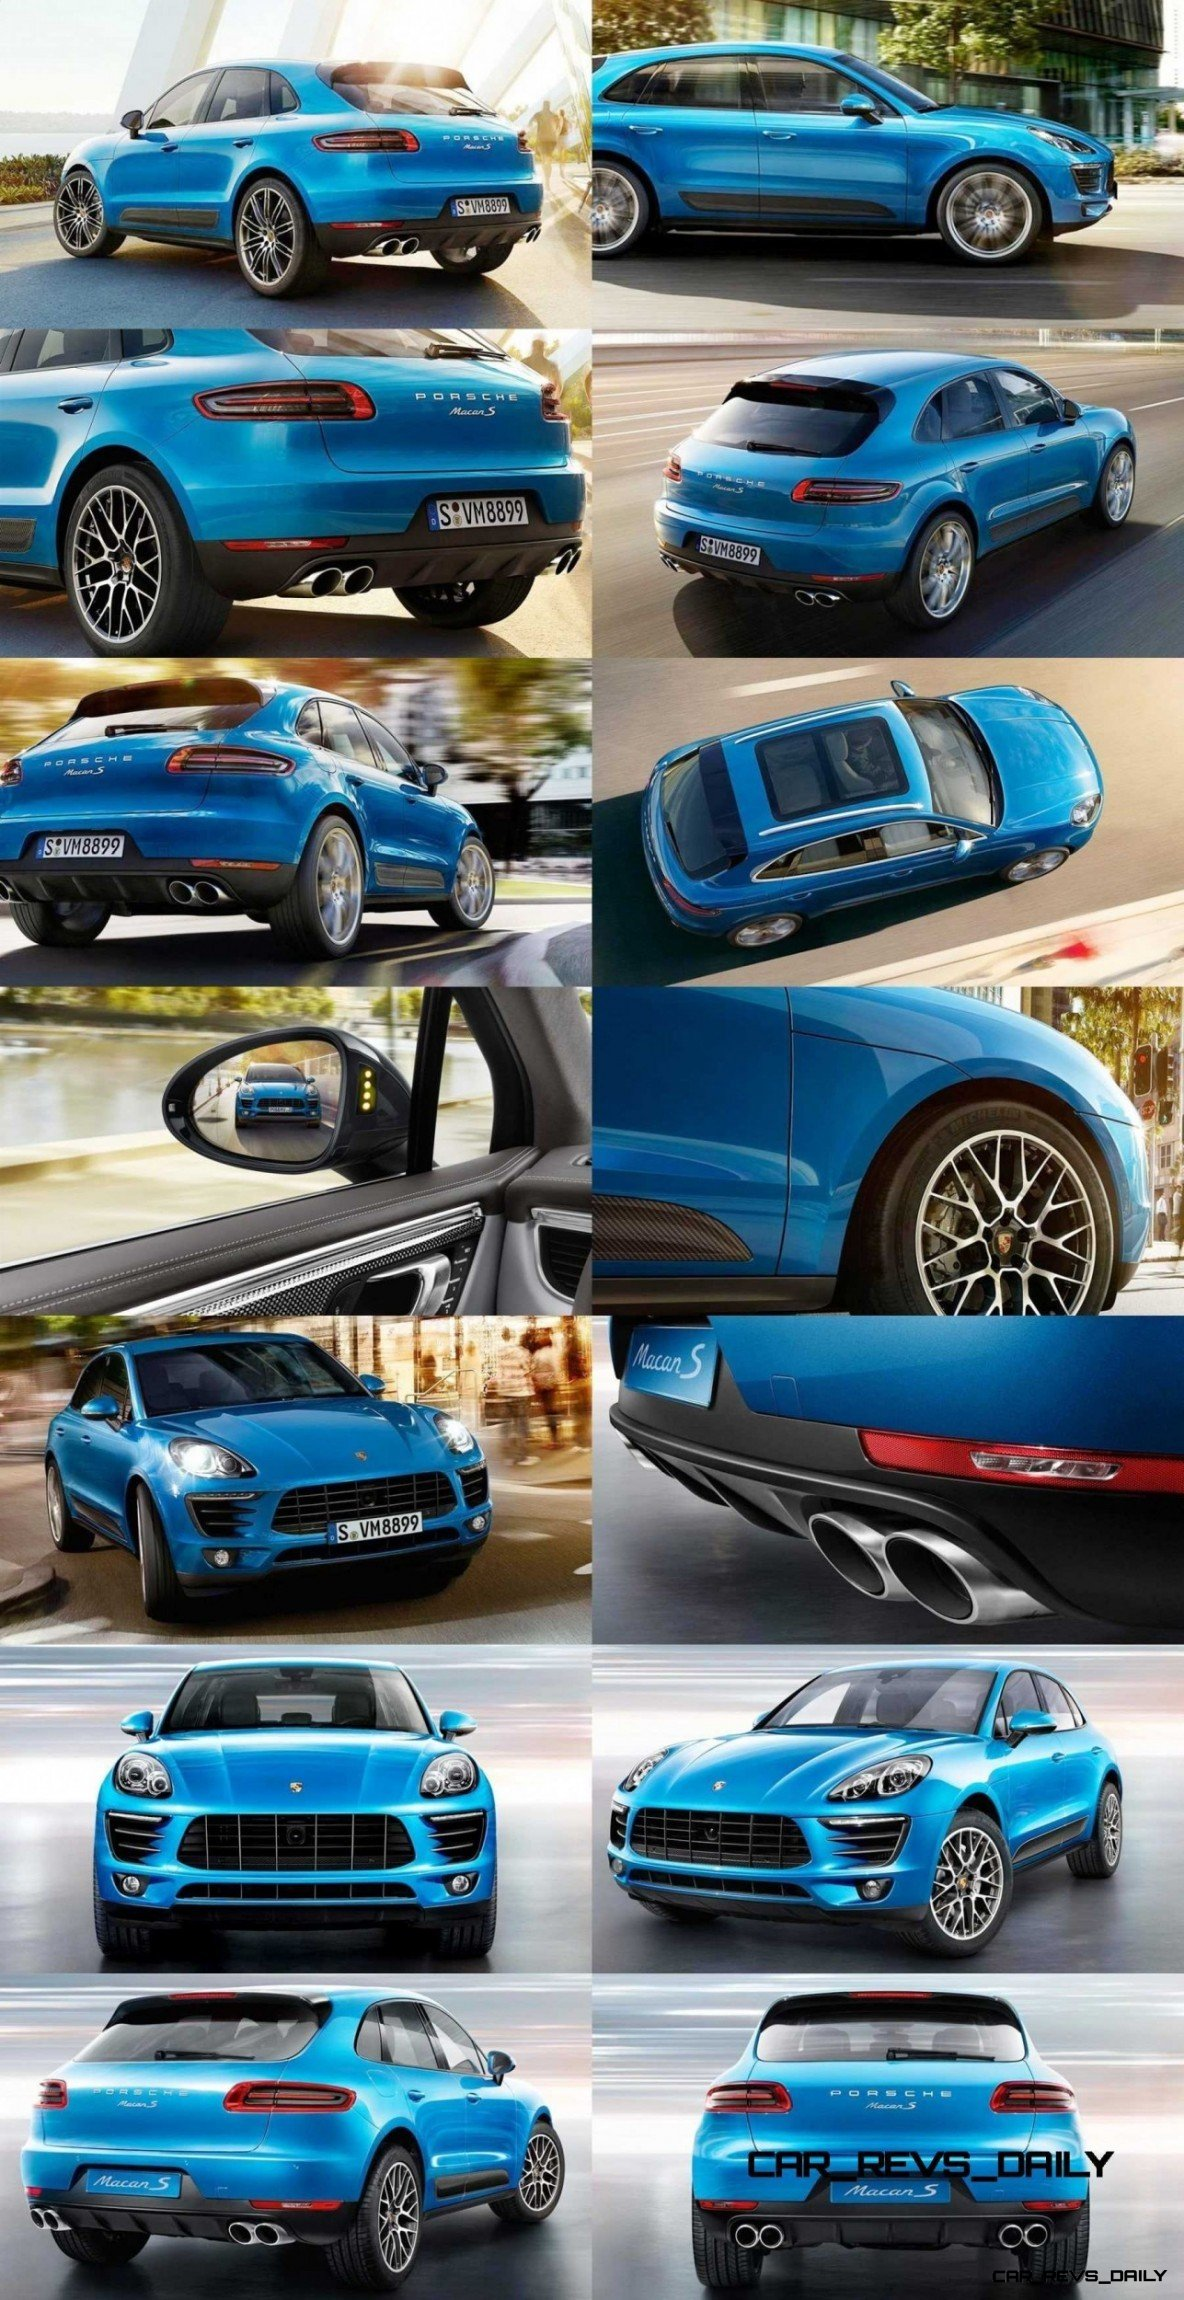 2015 Porsche Macan - Latest Images - CarRevsDaily-tile